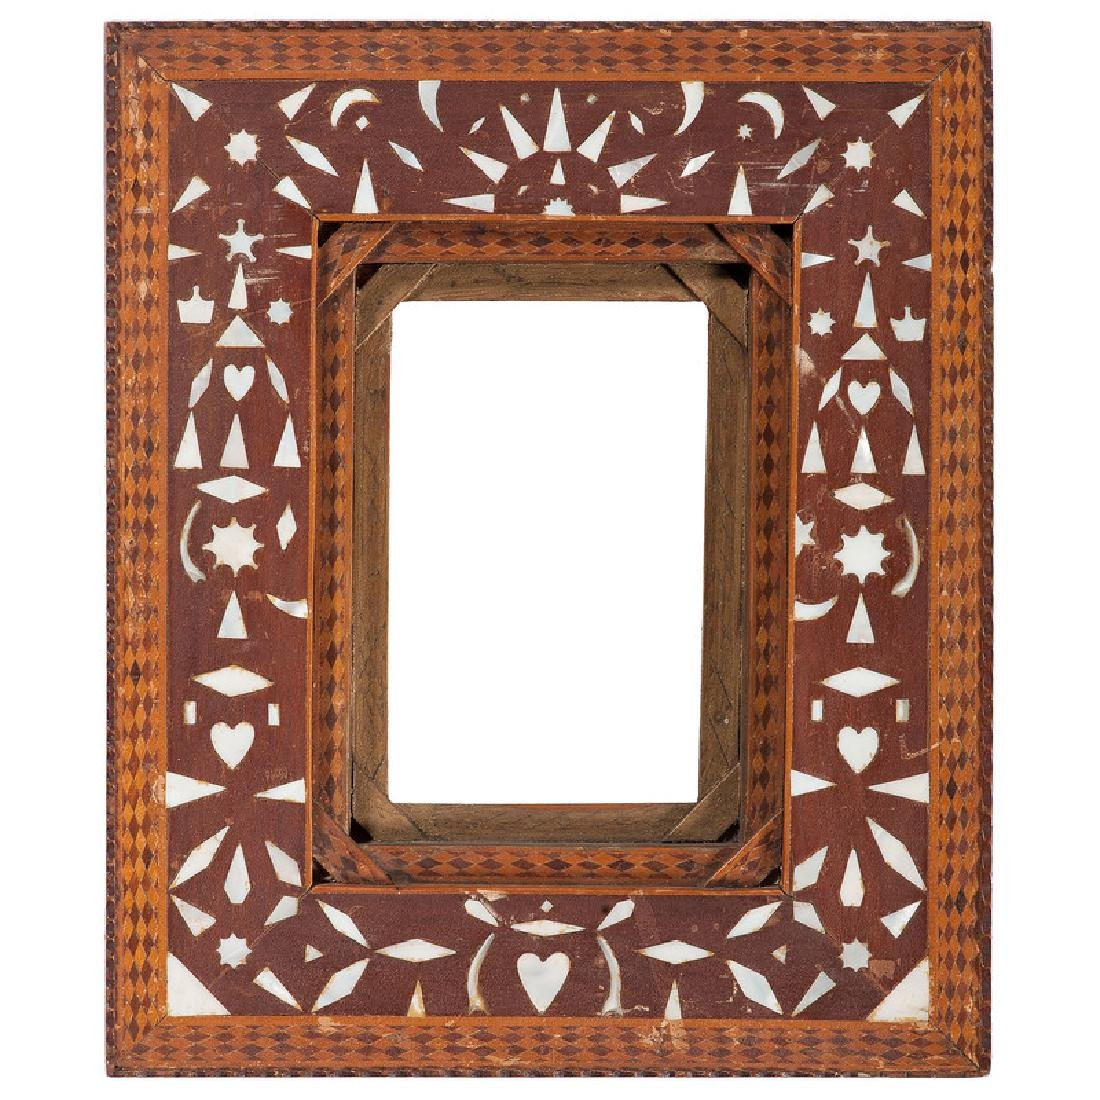 Folk Art Frame with Mother of Pearl Inlay